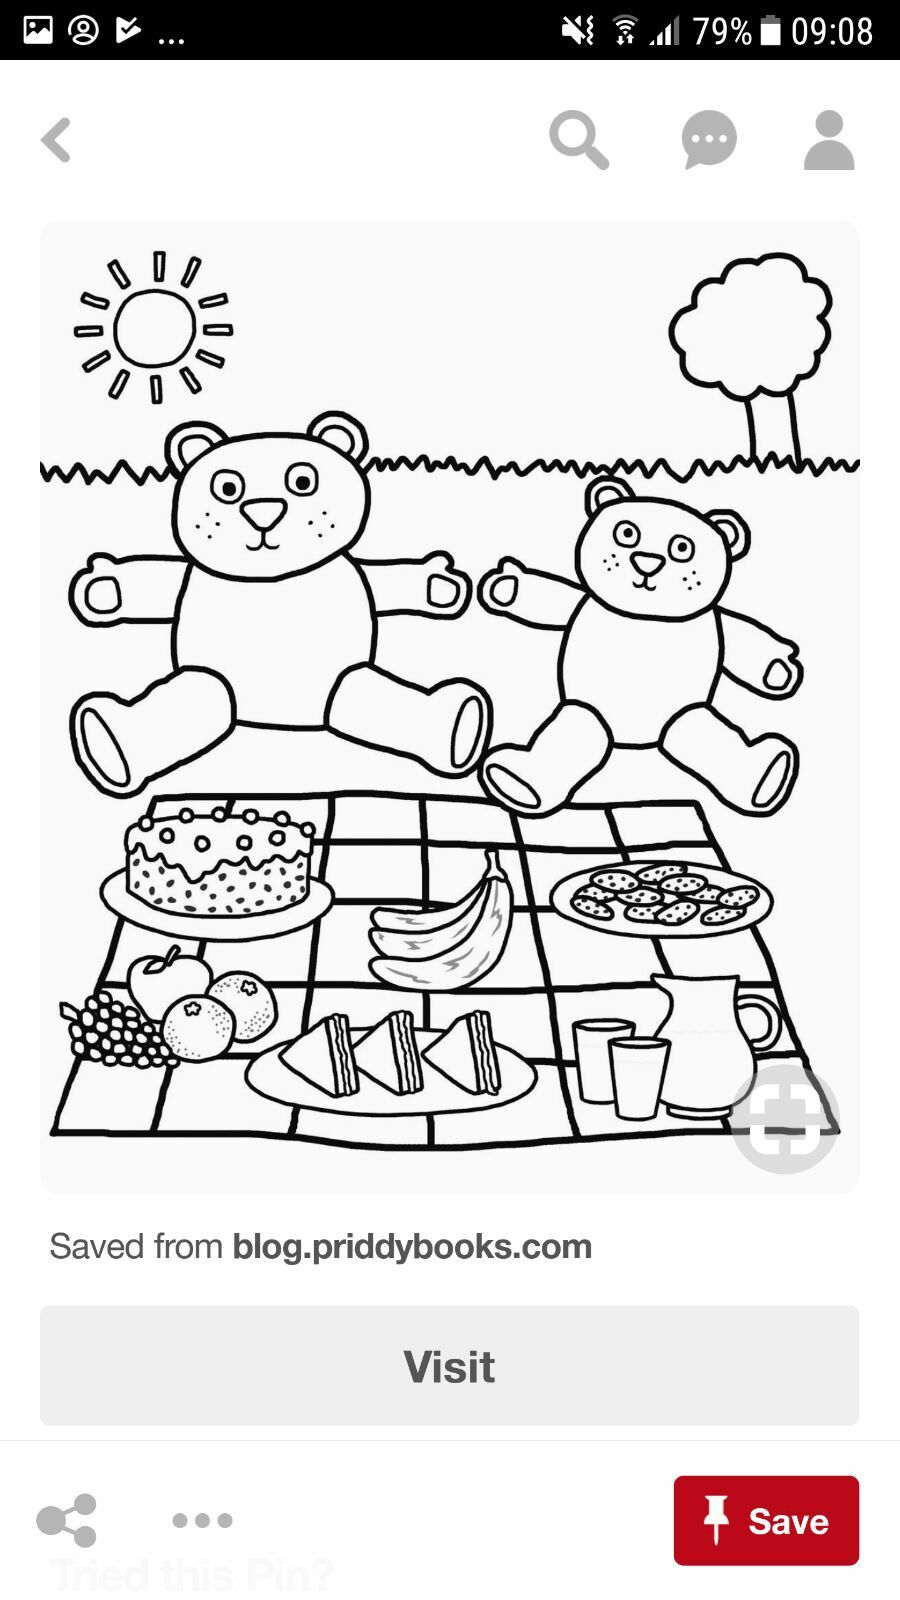 Pin By Rae Smits On Picnic Teddy Bear Coloring Pages Teddy Bear